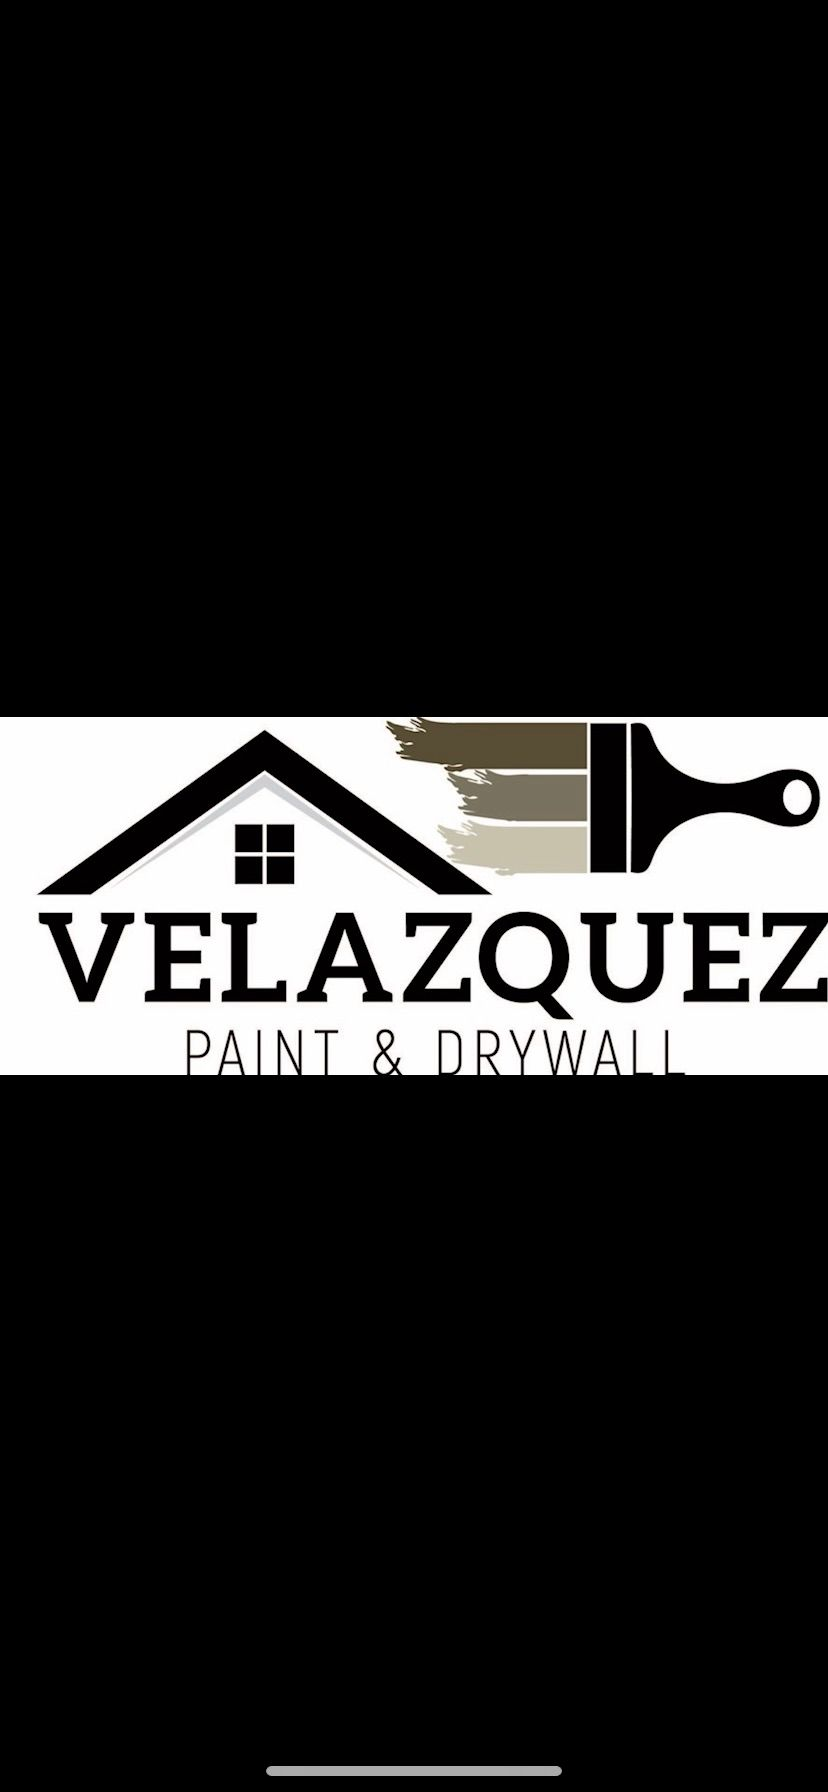 Velazquez Painting Services